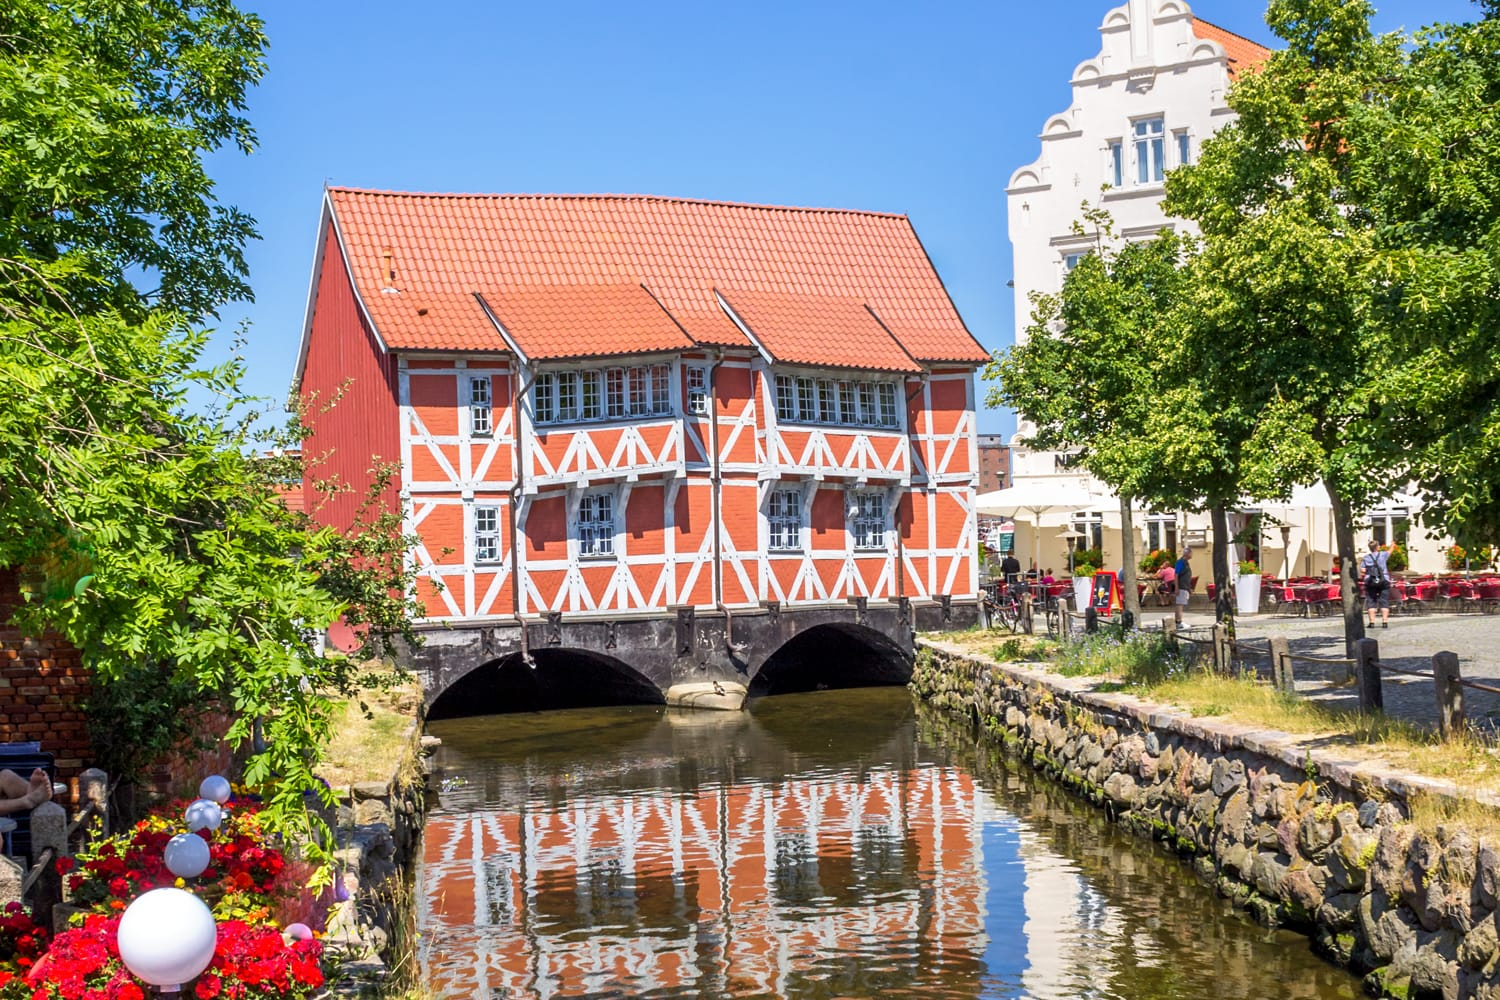 Historical city of Wismar, Germany